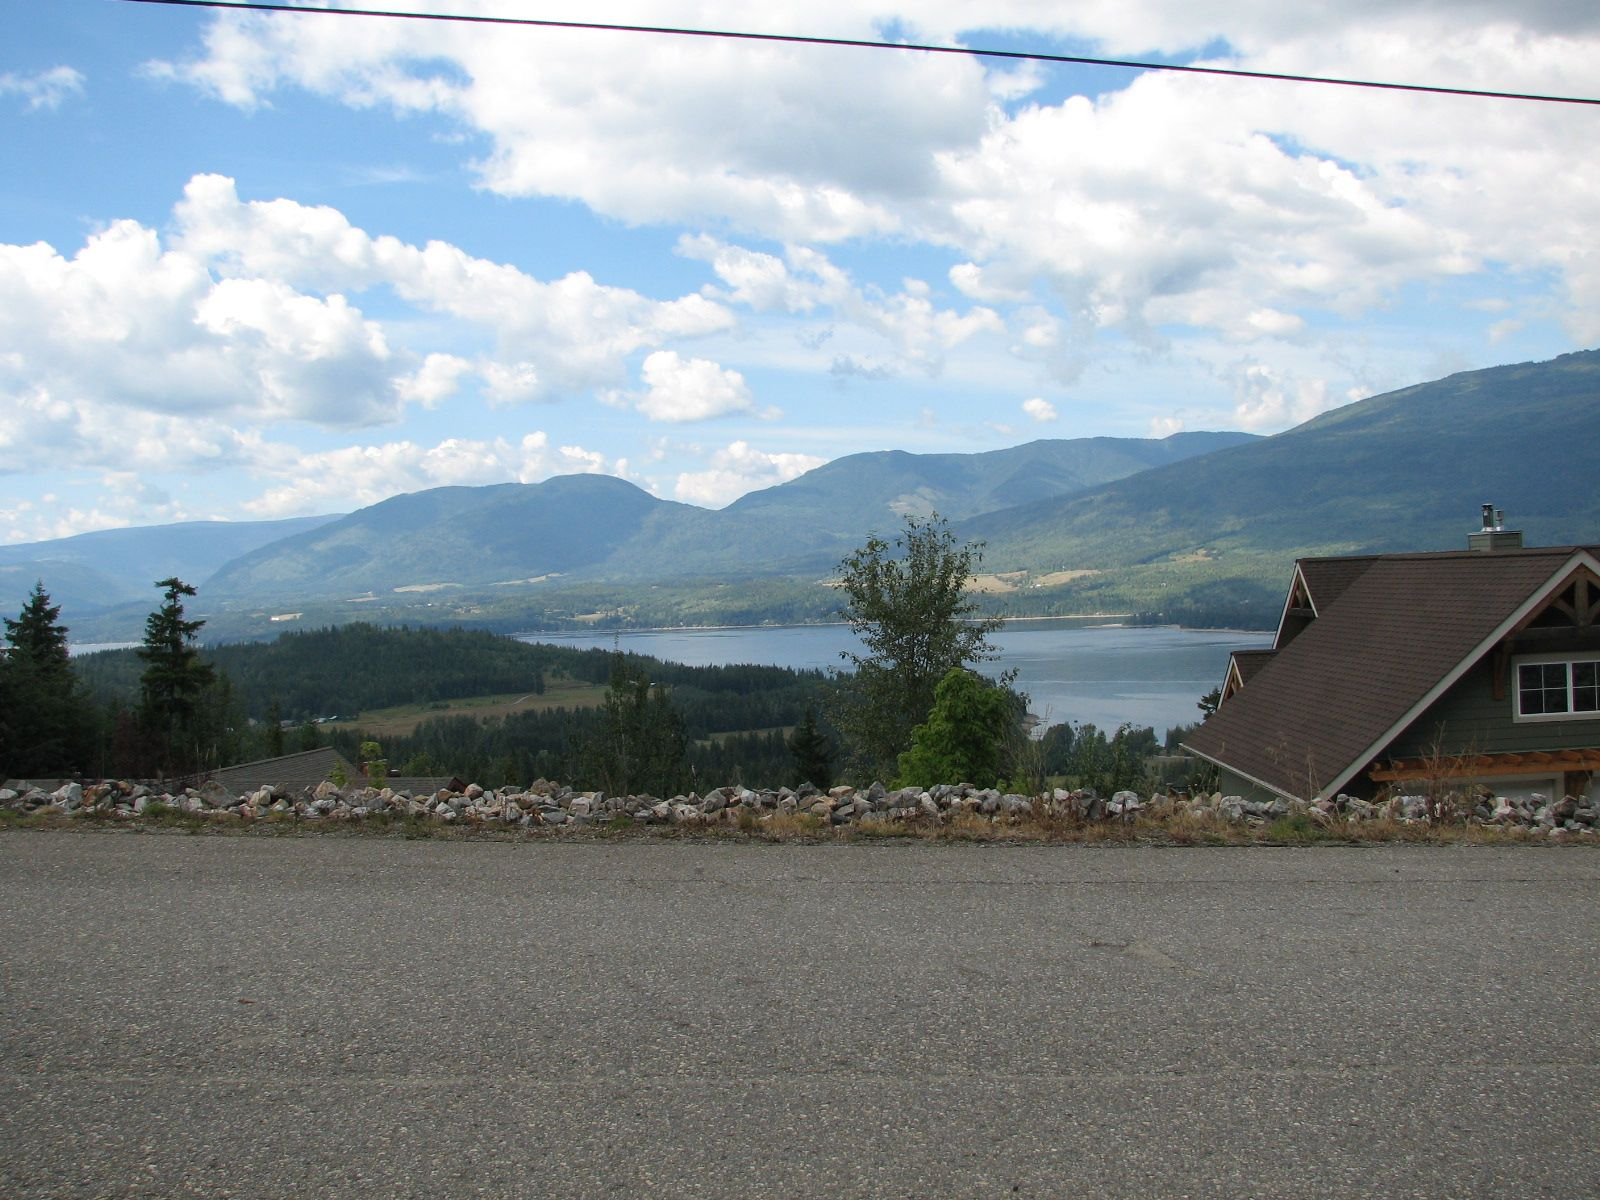 Main Photo: Lot 22 Ridge Road: Eagle Bay Land Only for sale (Shuswap)  : MLS®# 10167444